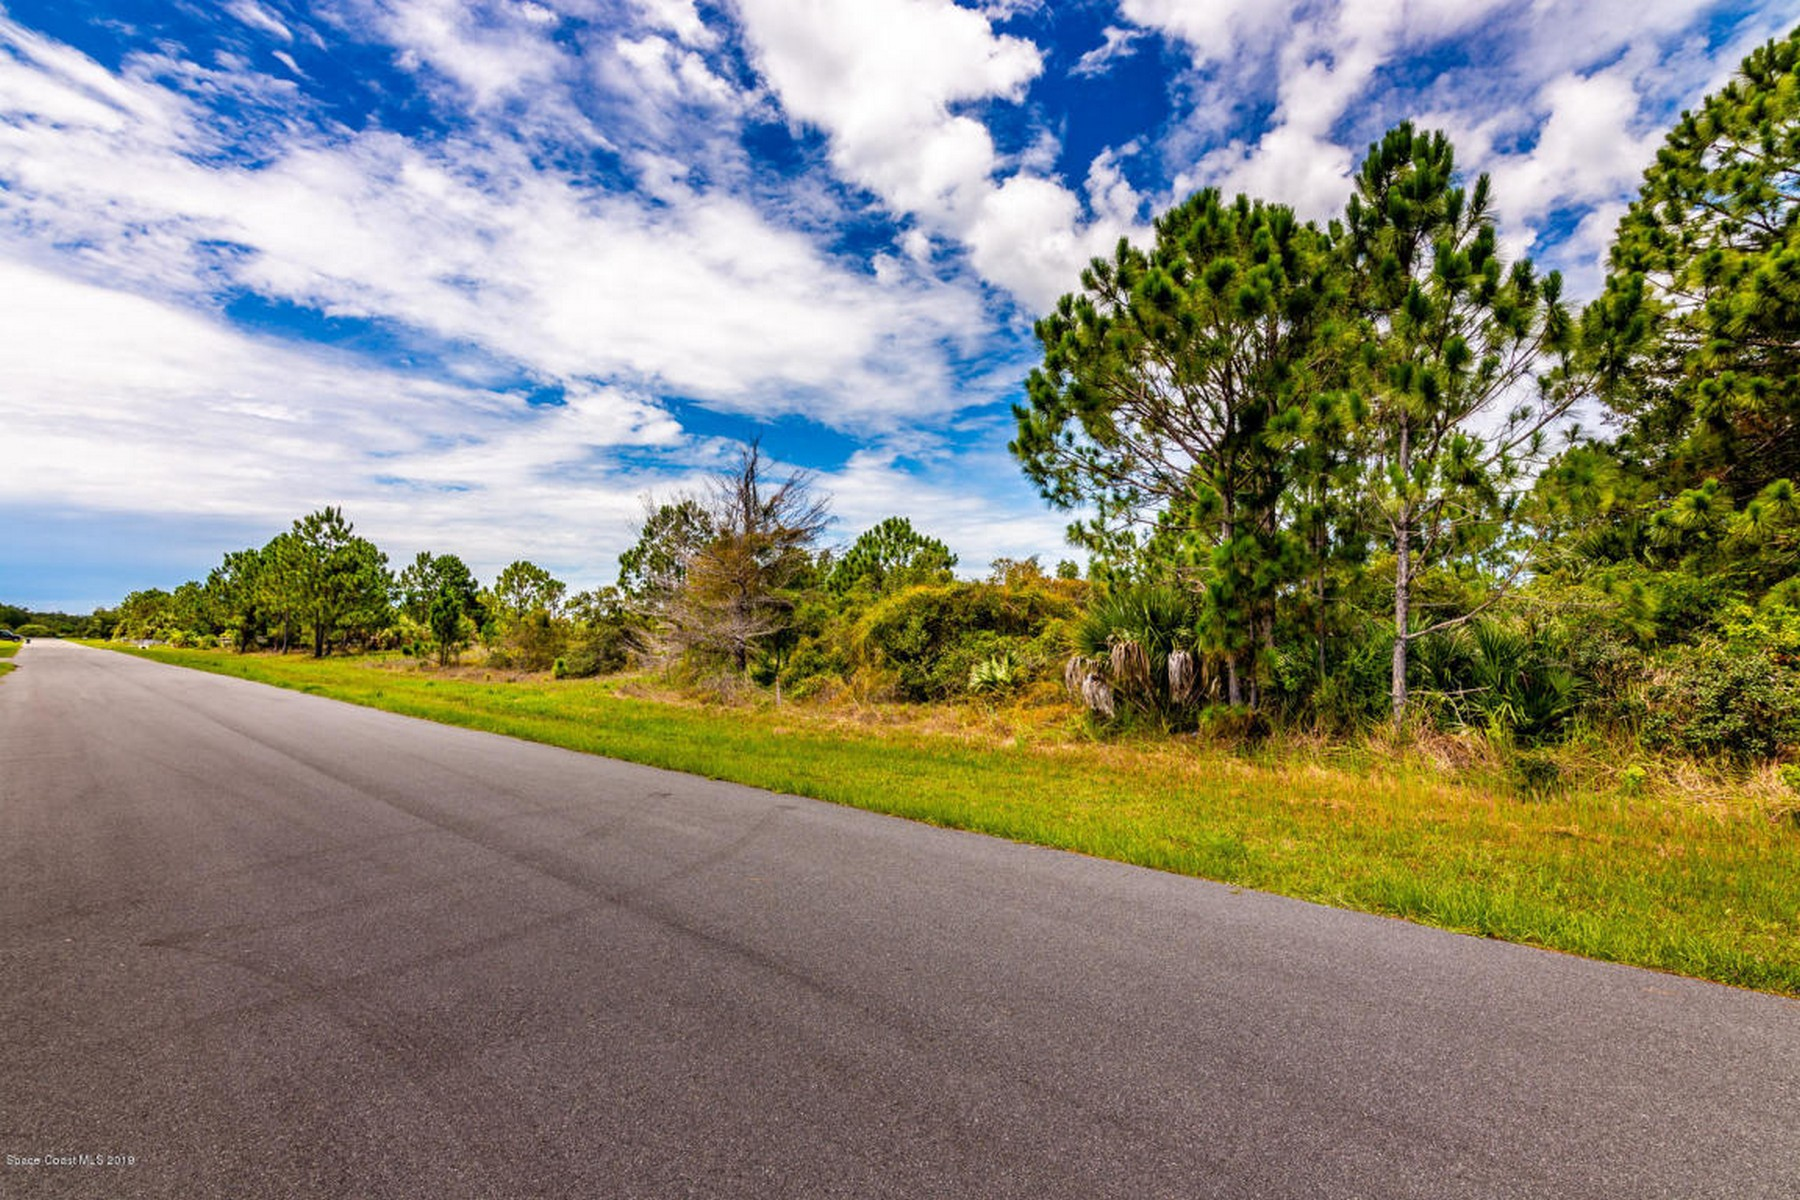 Terreno por un Venta en Ideally Located Lakefront Property TBD Unkown, Micco, Florida 32976 Estados Unidos